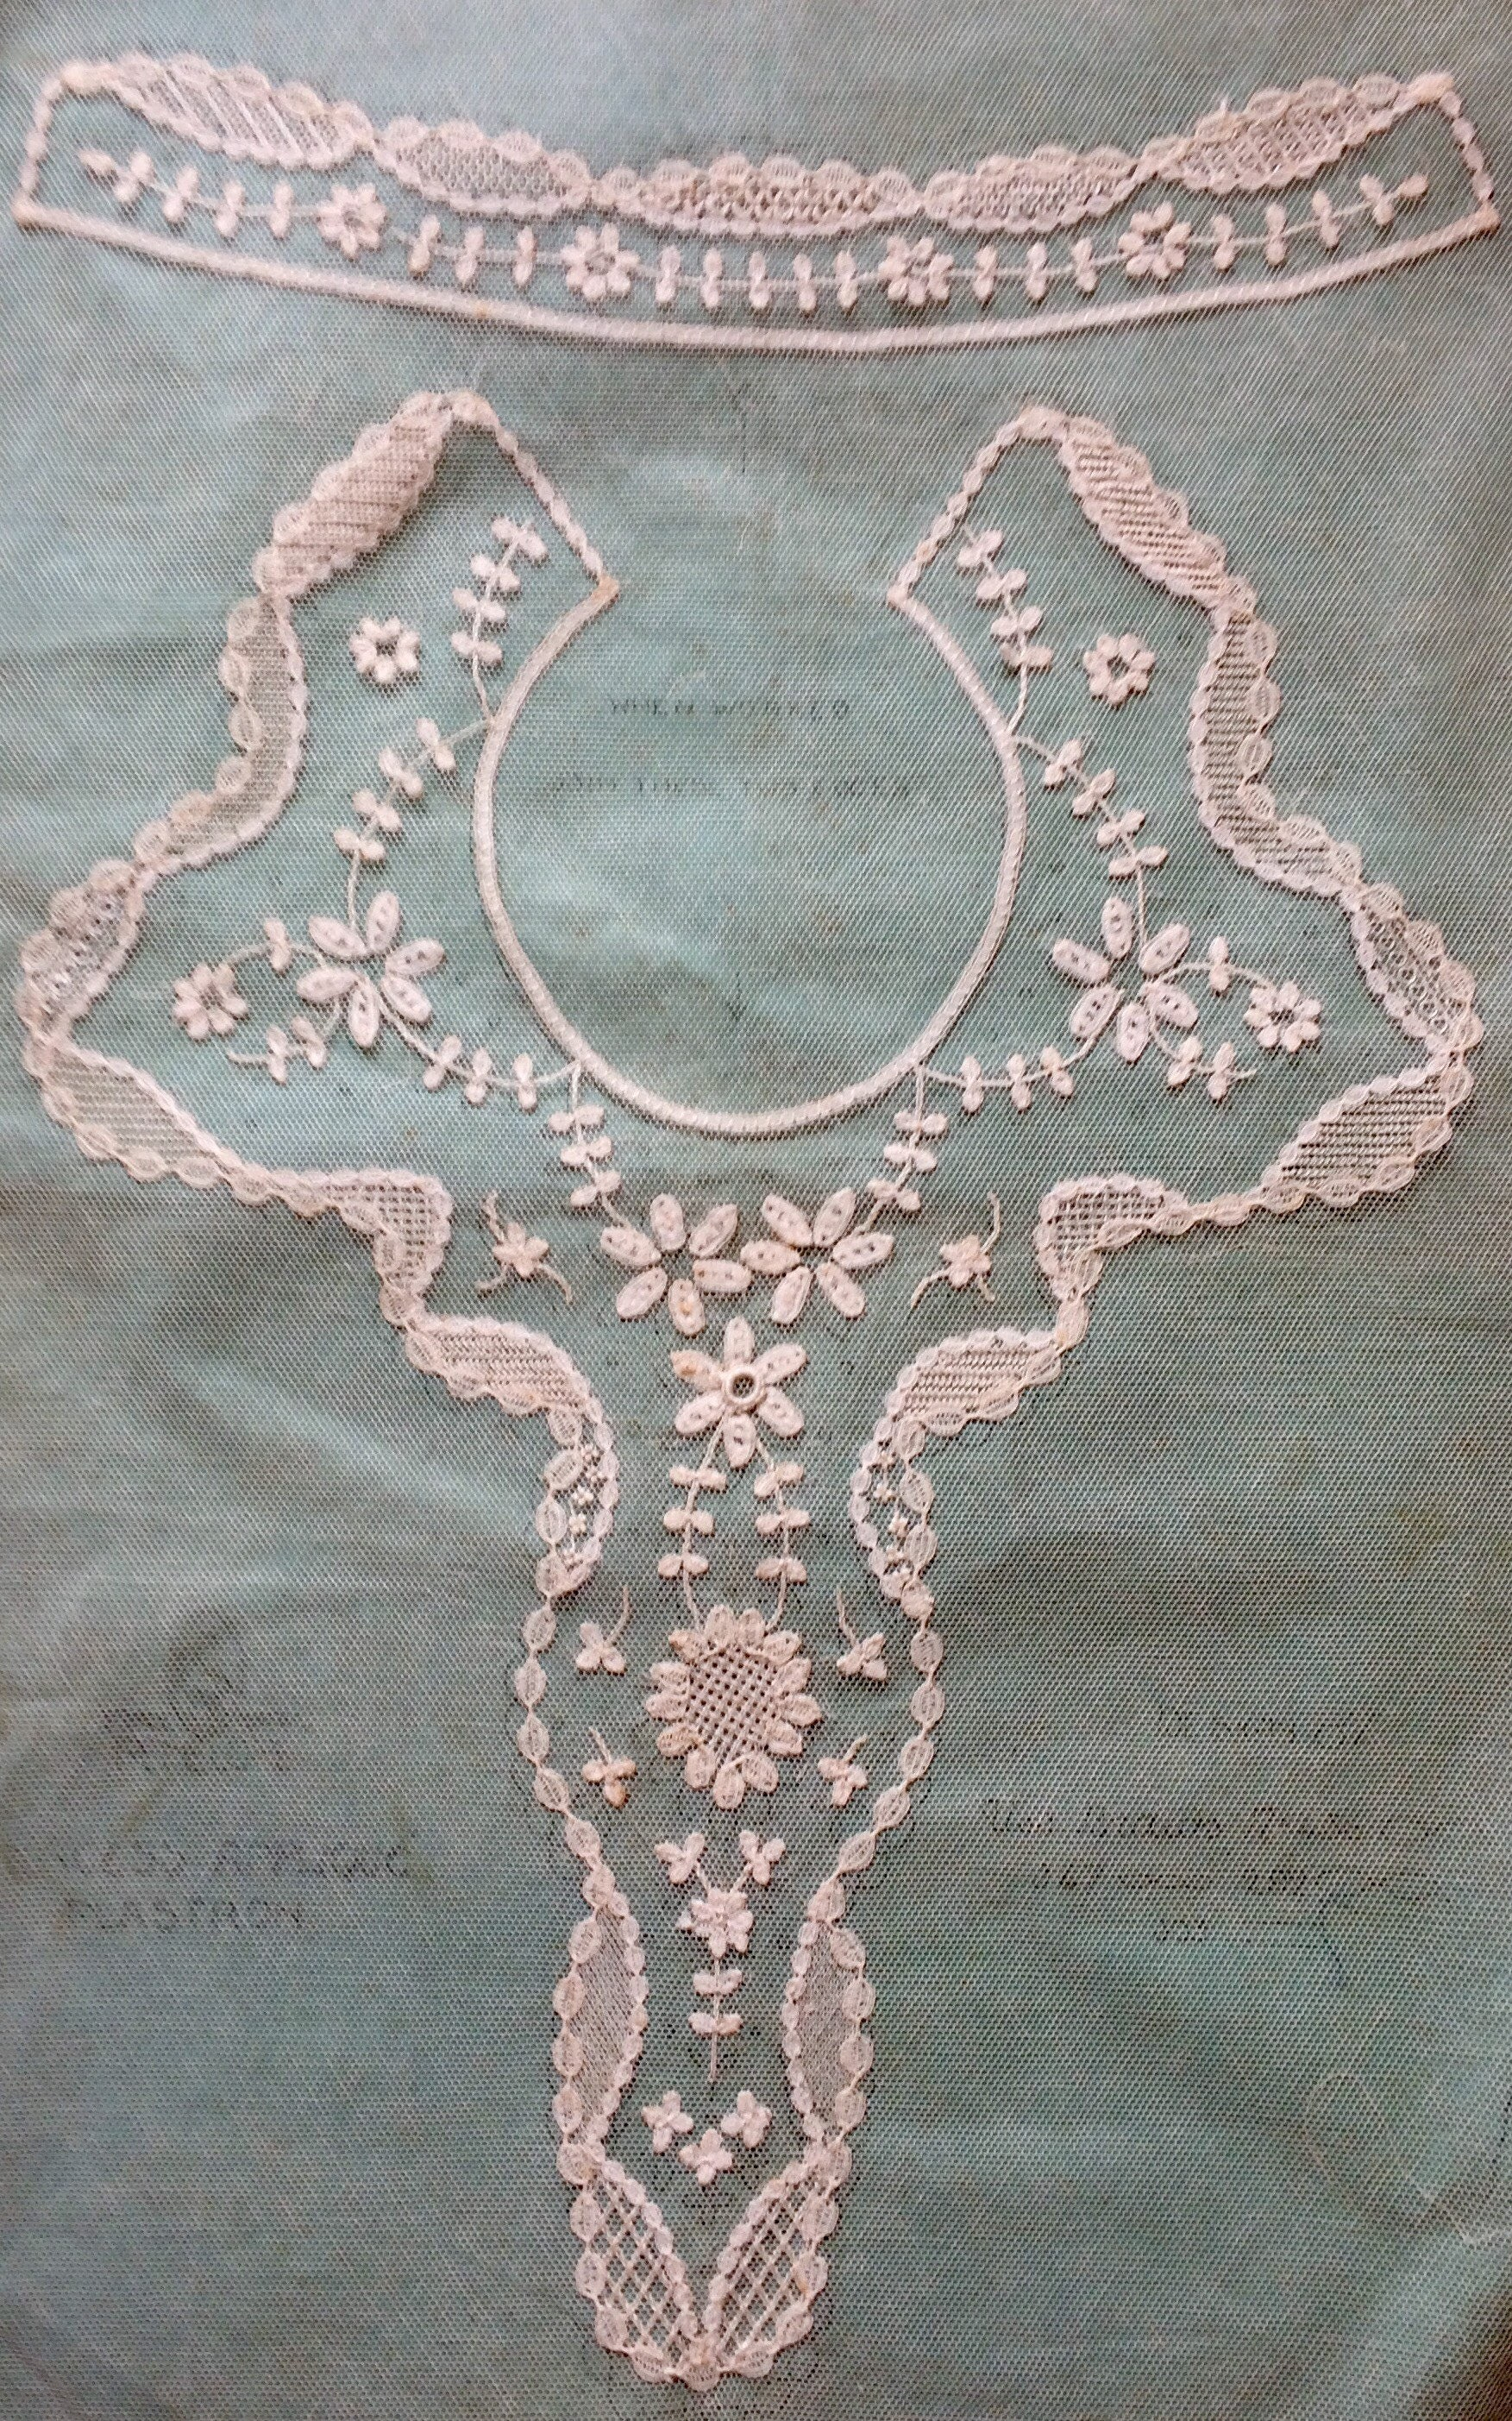 efbae93d30b4 Antique 1800s Rare Pattern   Completed Princess Silk Lace Bridal Bodice  Applique work Ex Museum. gallery photo gallery photo gallery photo ...